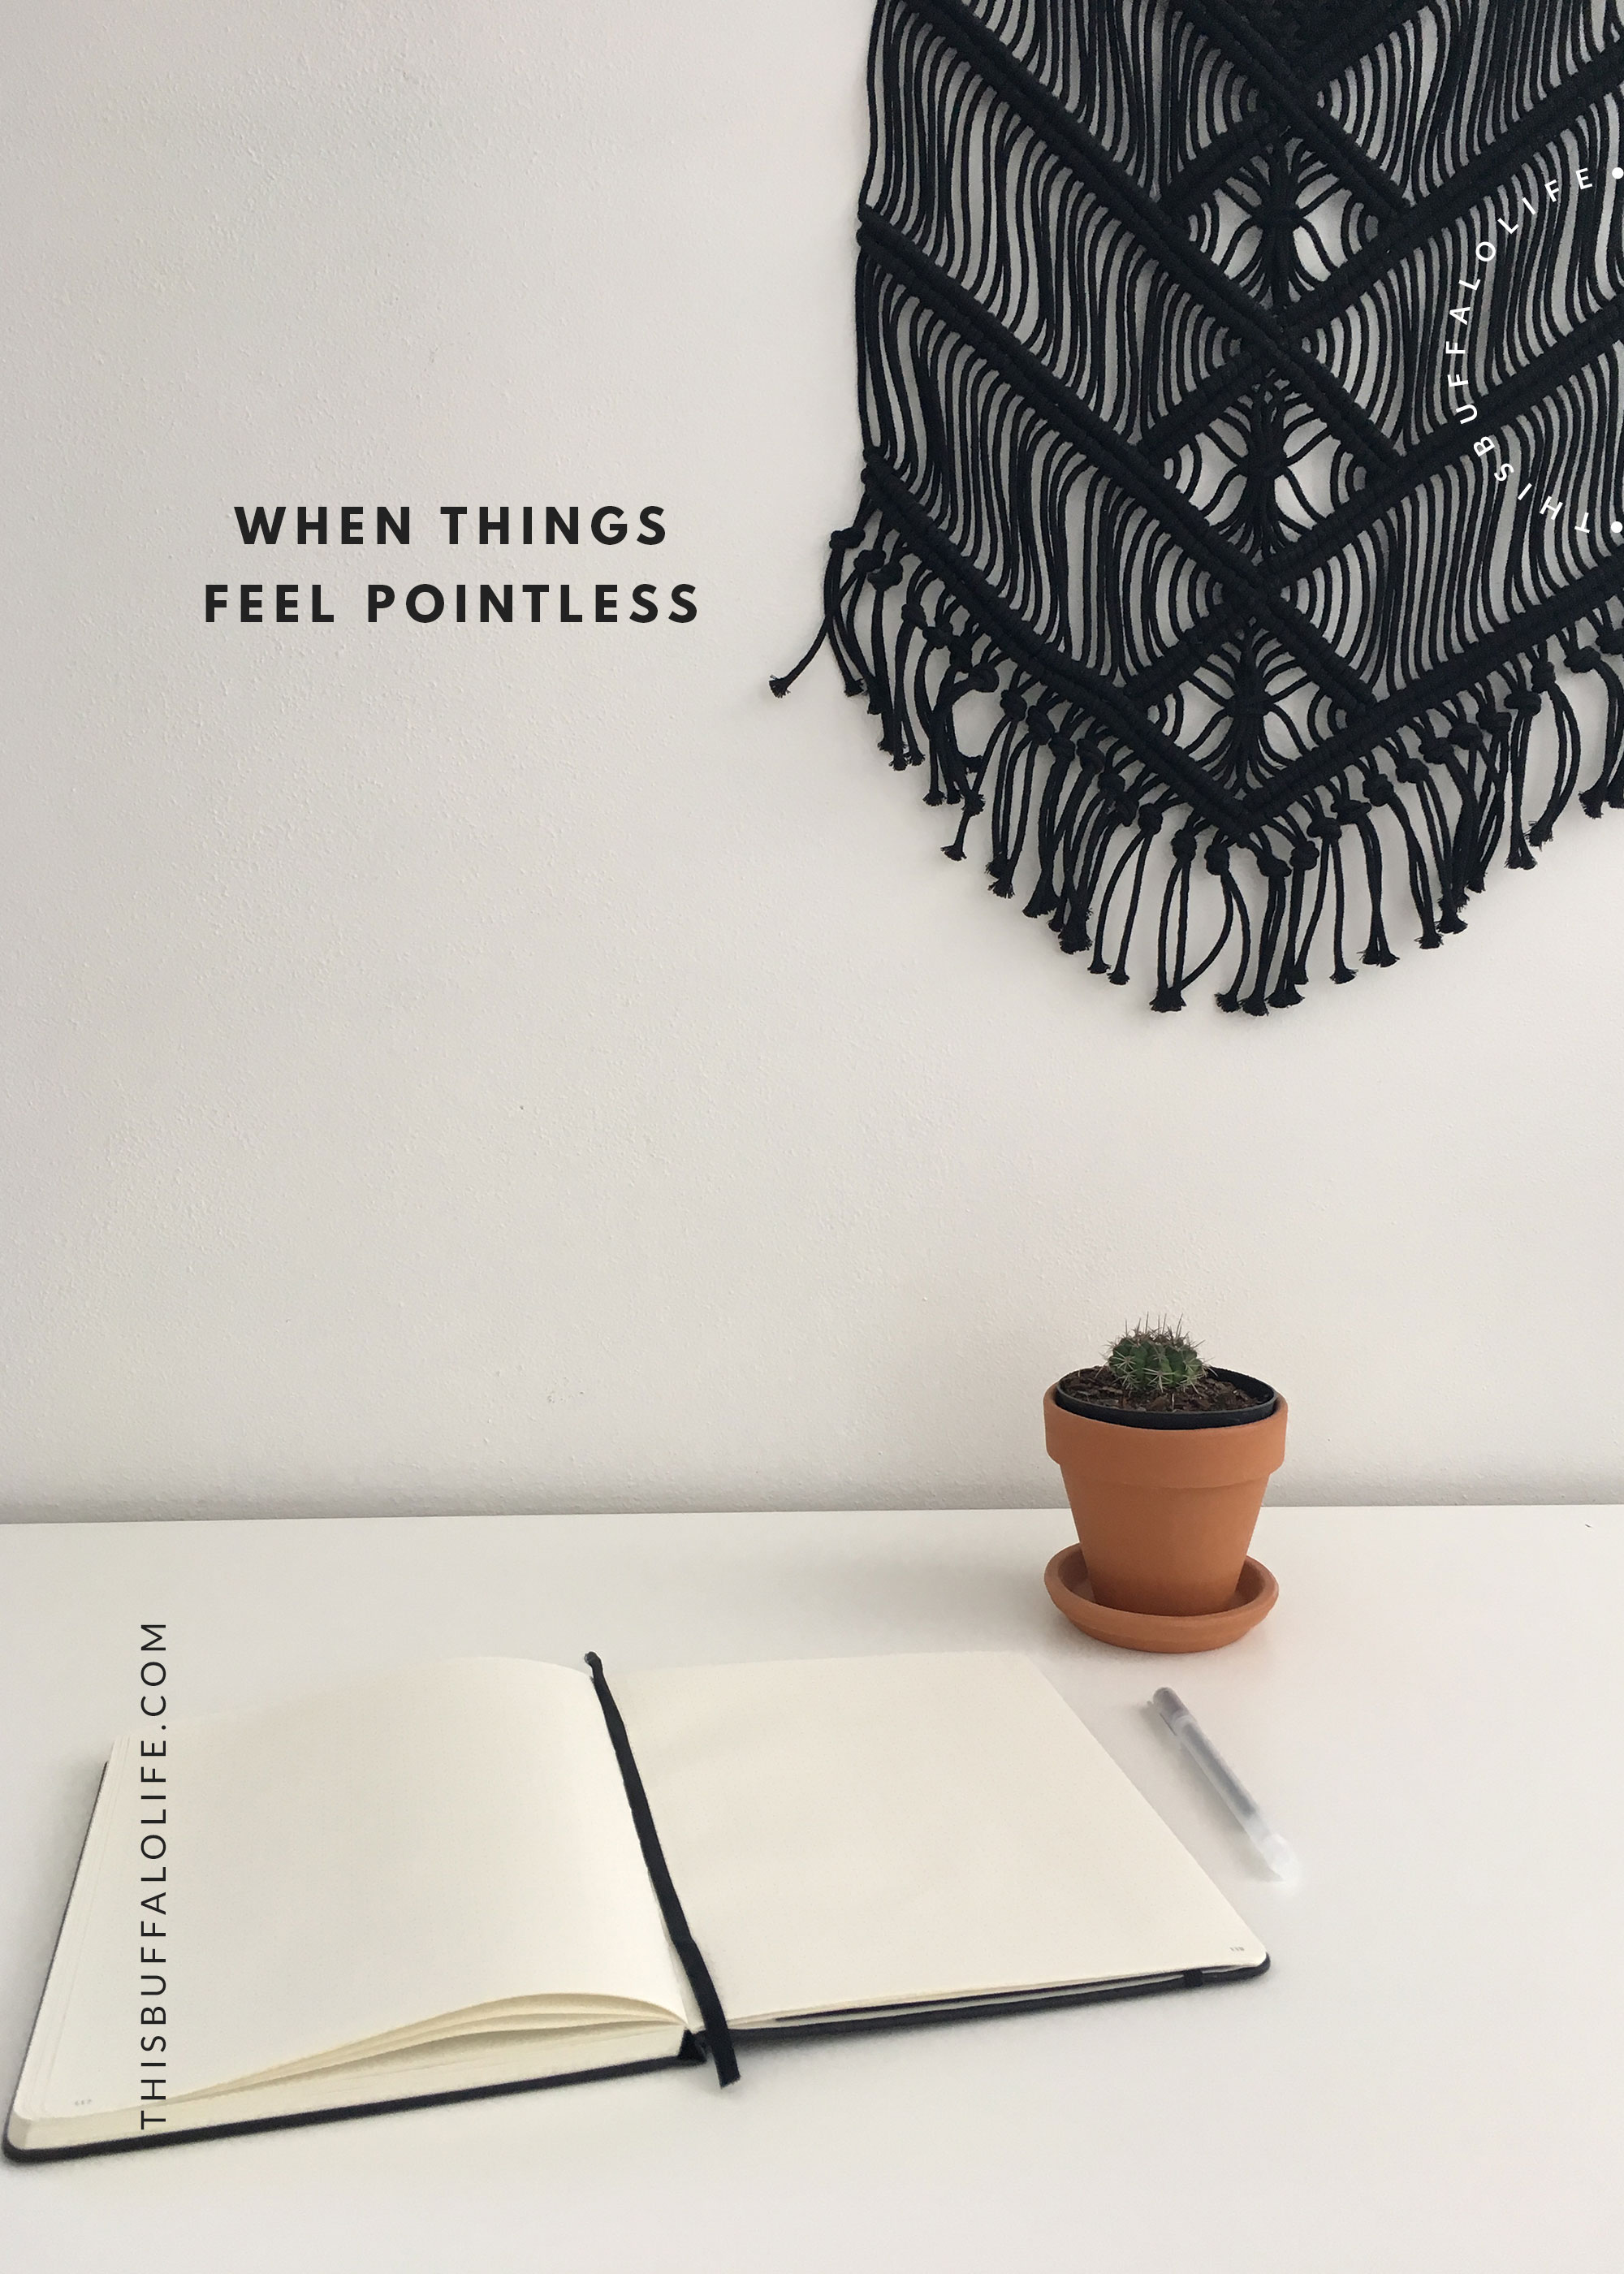 when things feel pointless